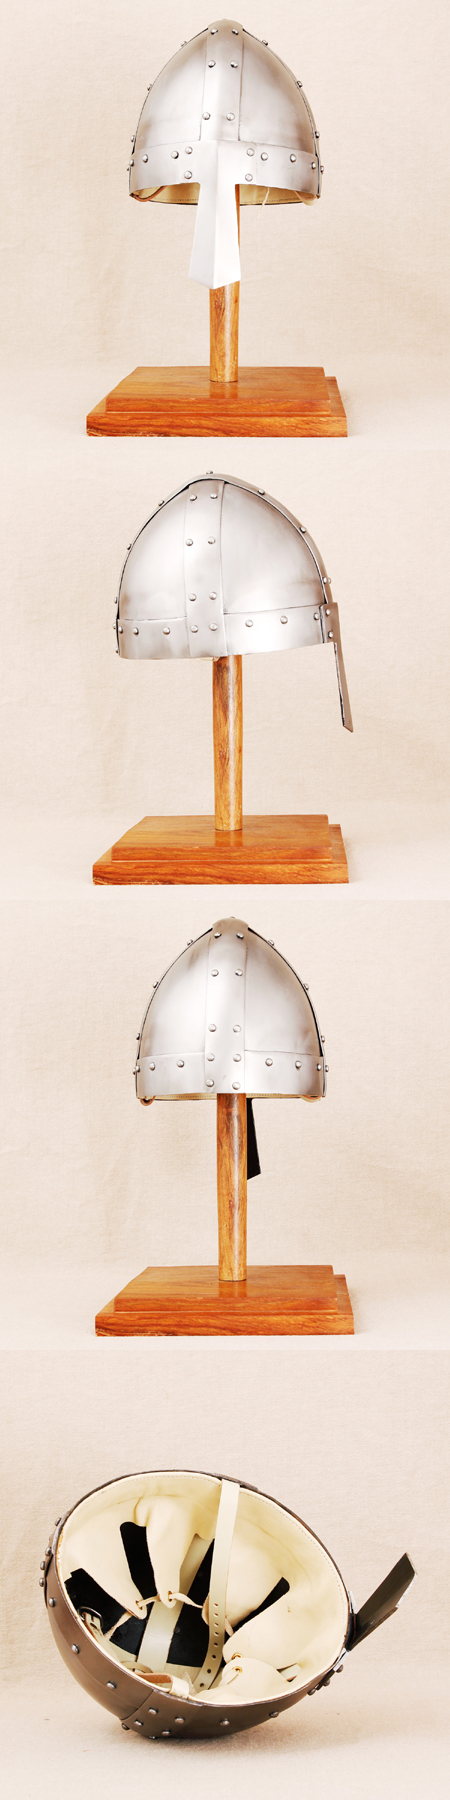 Strong Viking helmet 900 AD - reenactment